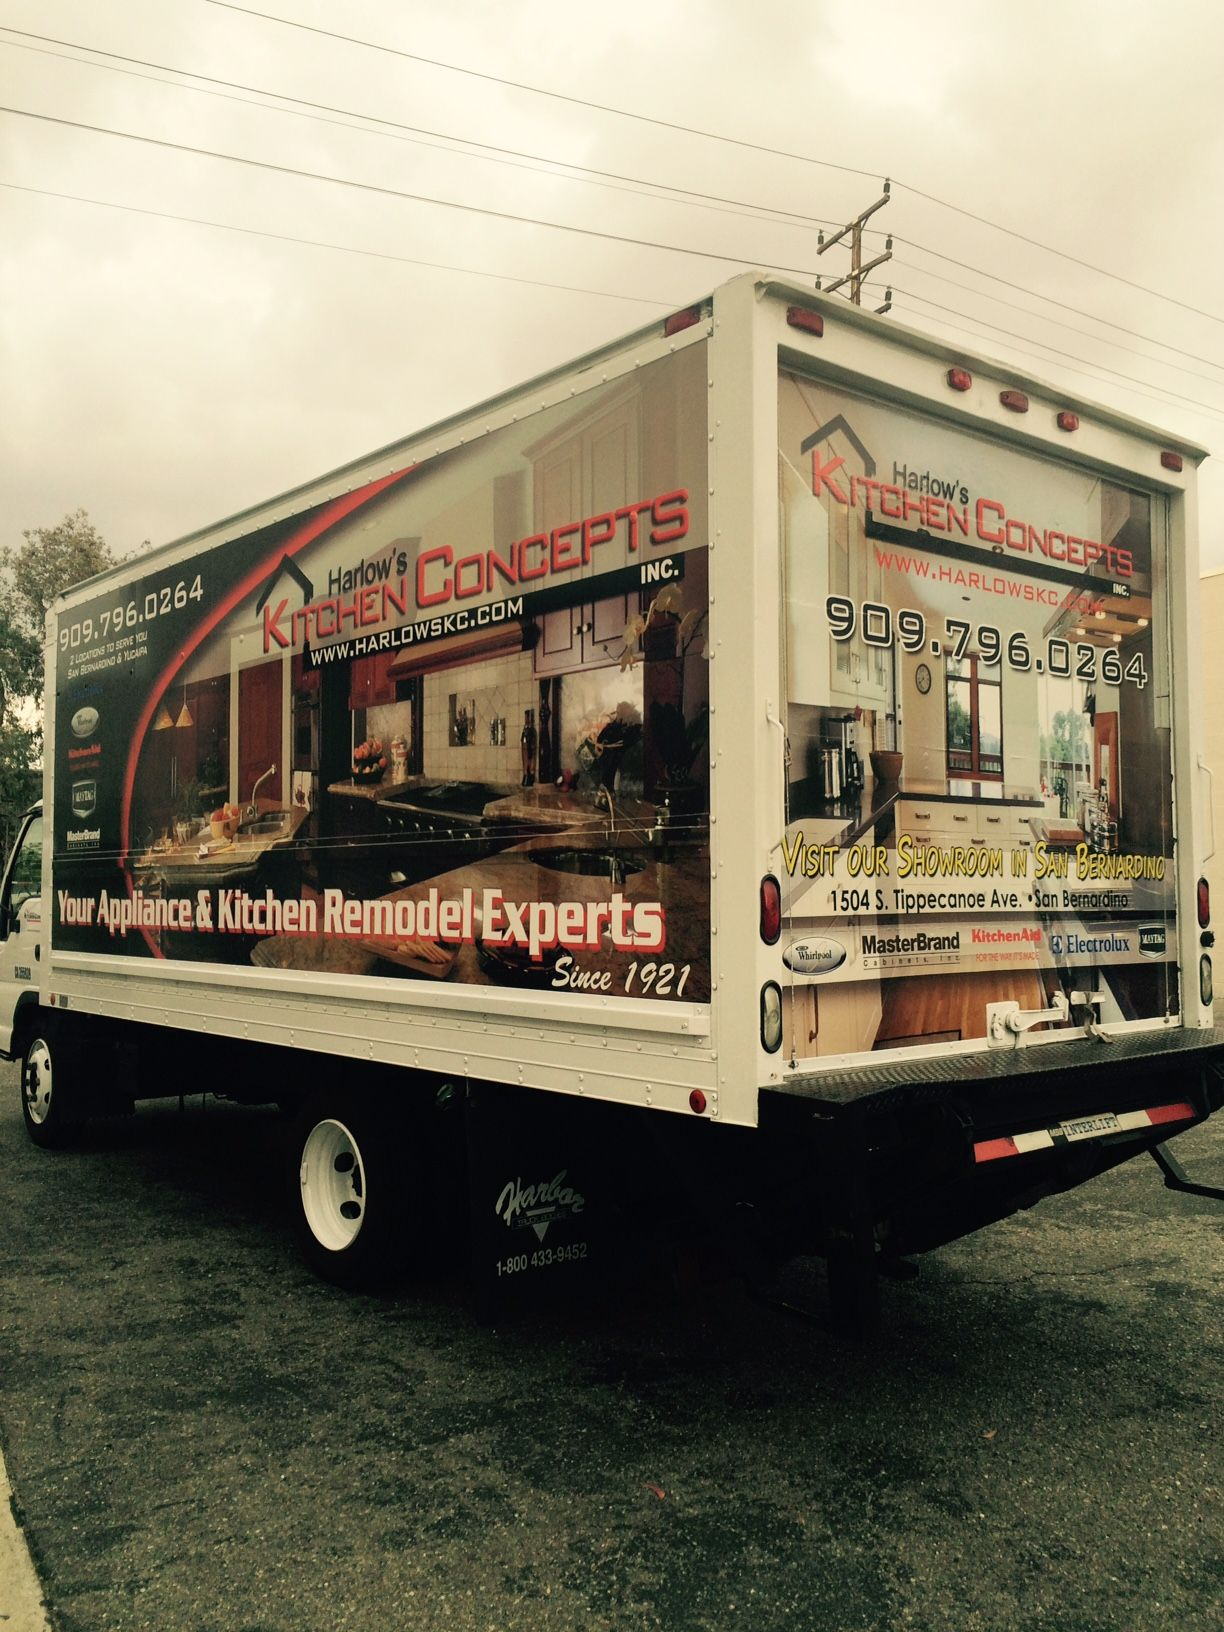 Harlowu0027s Kitchen Concepts In San Bernardino Delivery Truck Wrap By  R81Wraps.com We Designed,